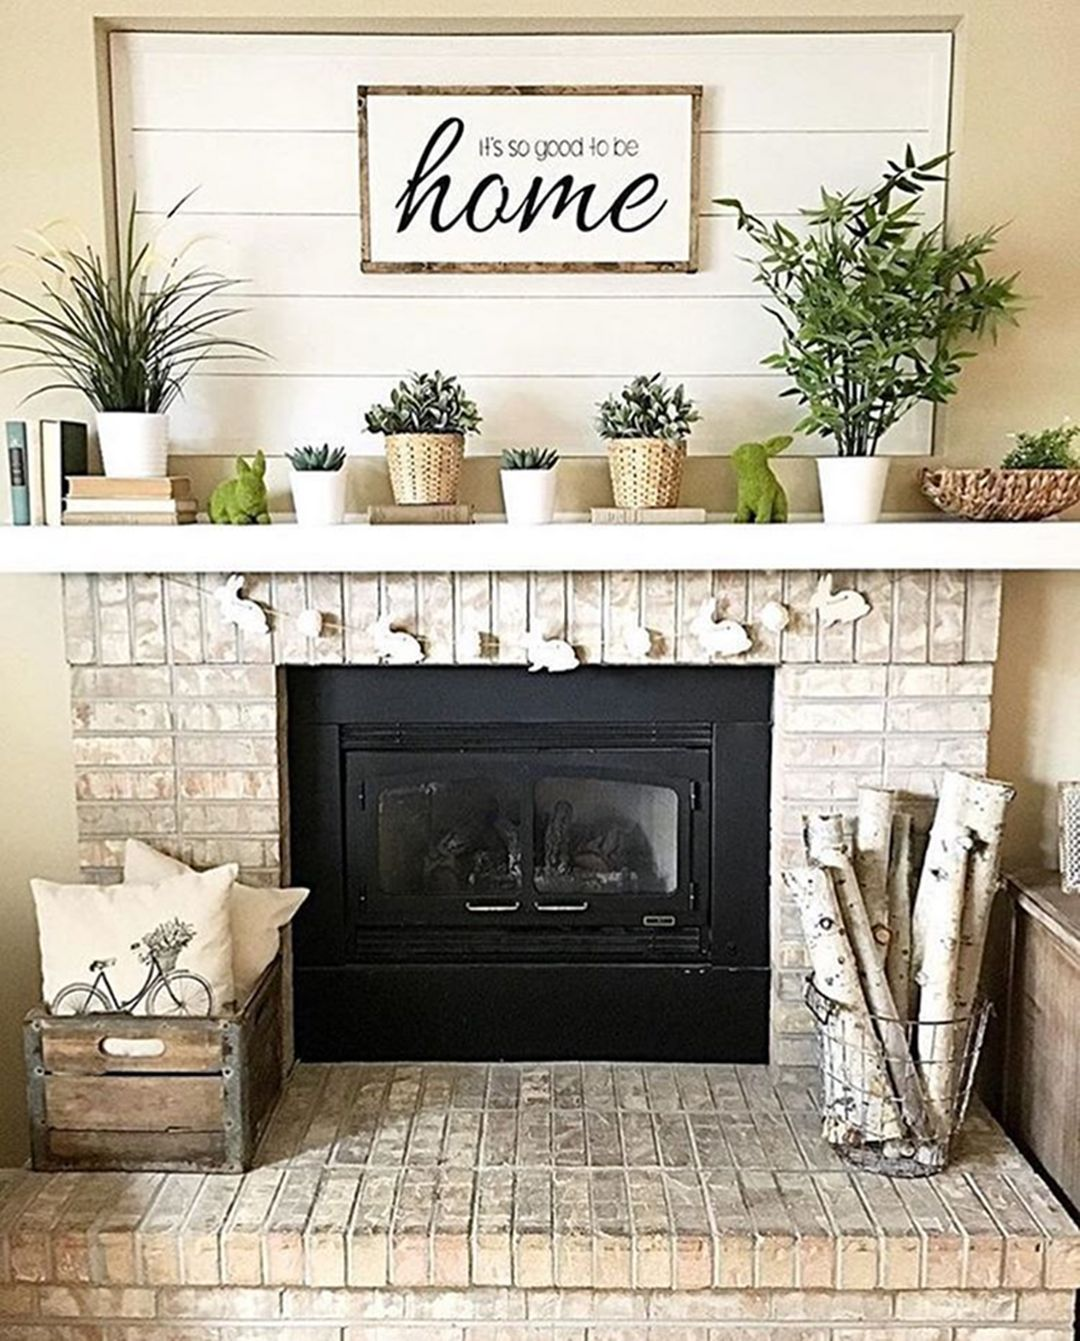 Farmhouse Design Style For Your Home Farmhouse Style Uses Gently Ill Treated Furniture Fireplace Mantle Decor Farmhouse Fireplace Decor Fireplace Mantel Decor